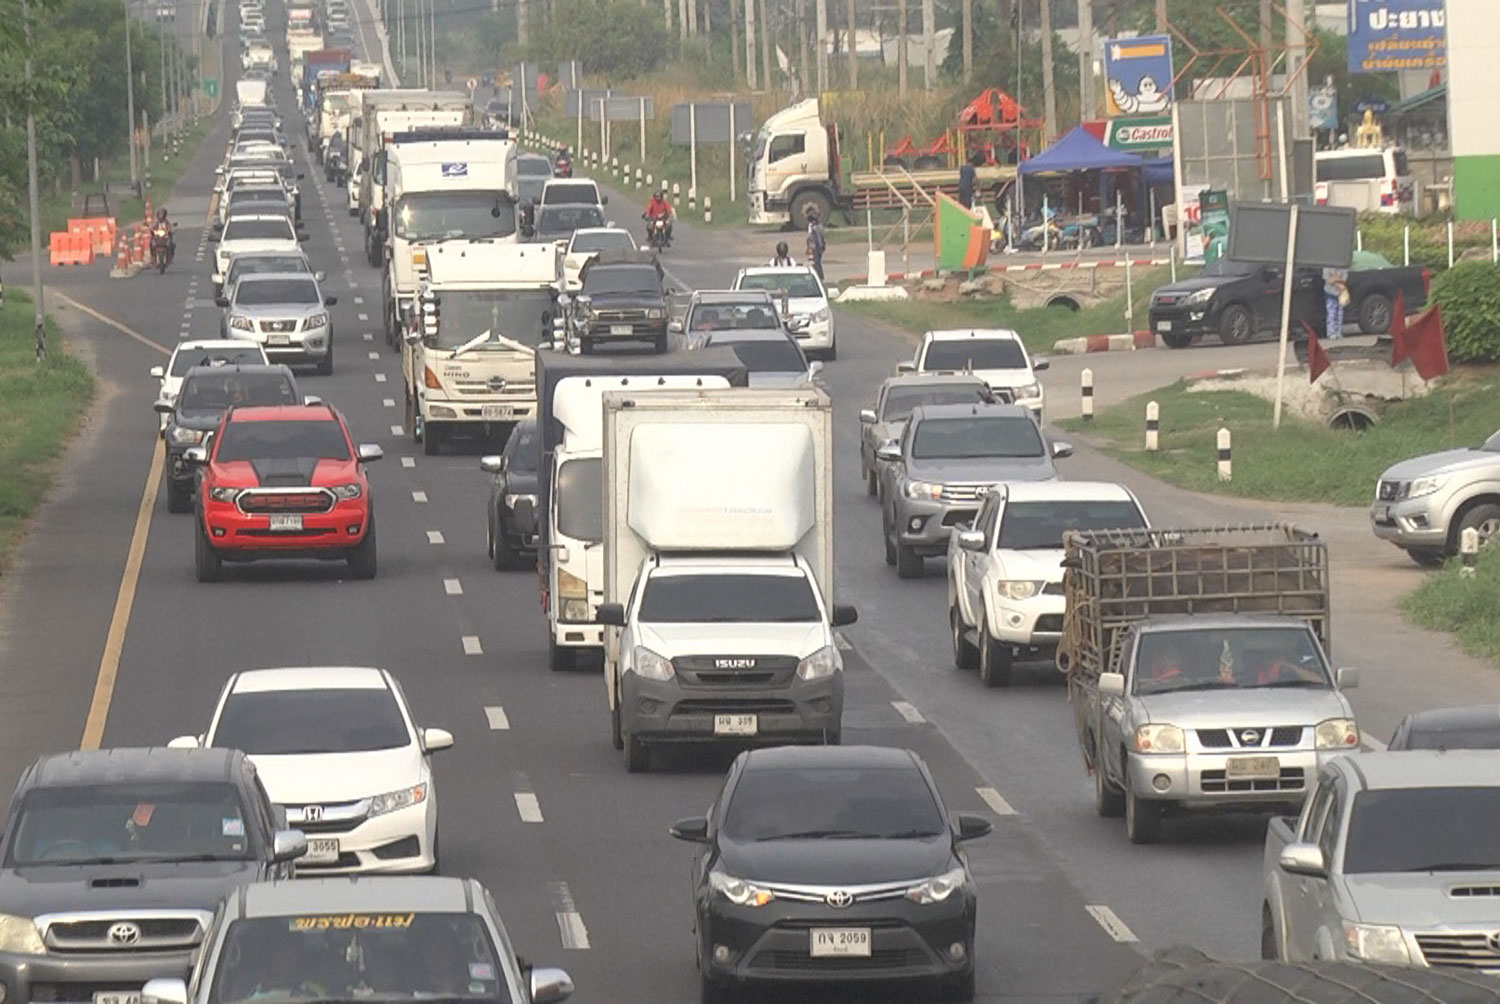 Traffic is heavy at several sections of the Northeast-bound Mittraphp Highway in Nakhon Ratchasima on Saturday as Songkran revellers begin trips to their provinces during the long holiday amid rising Covid-19 infections. (Photo: Prasit Tangprasert)